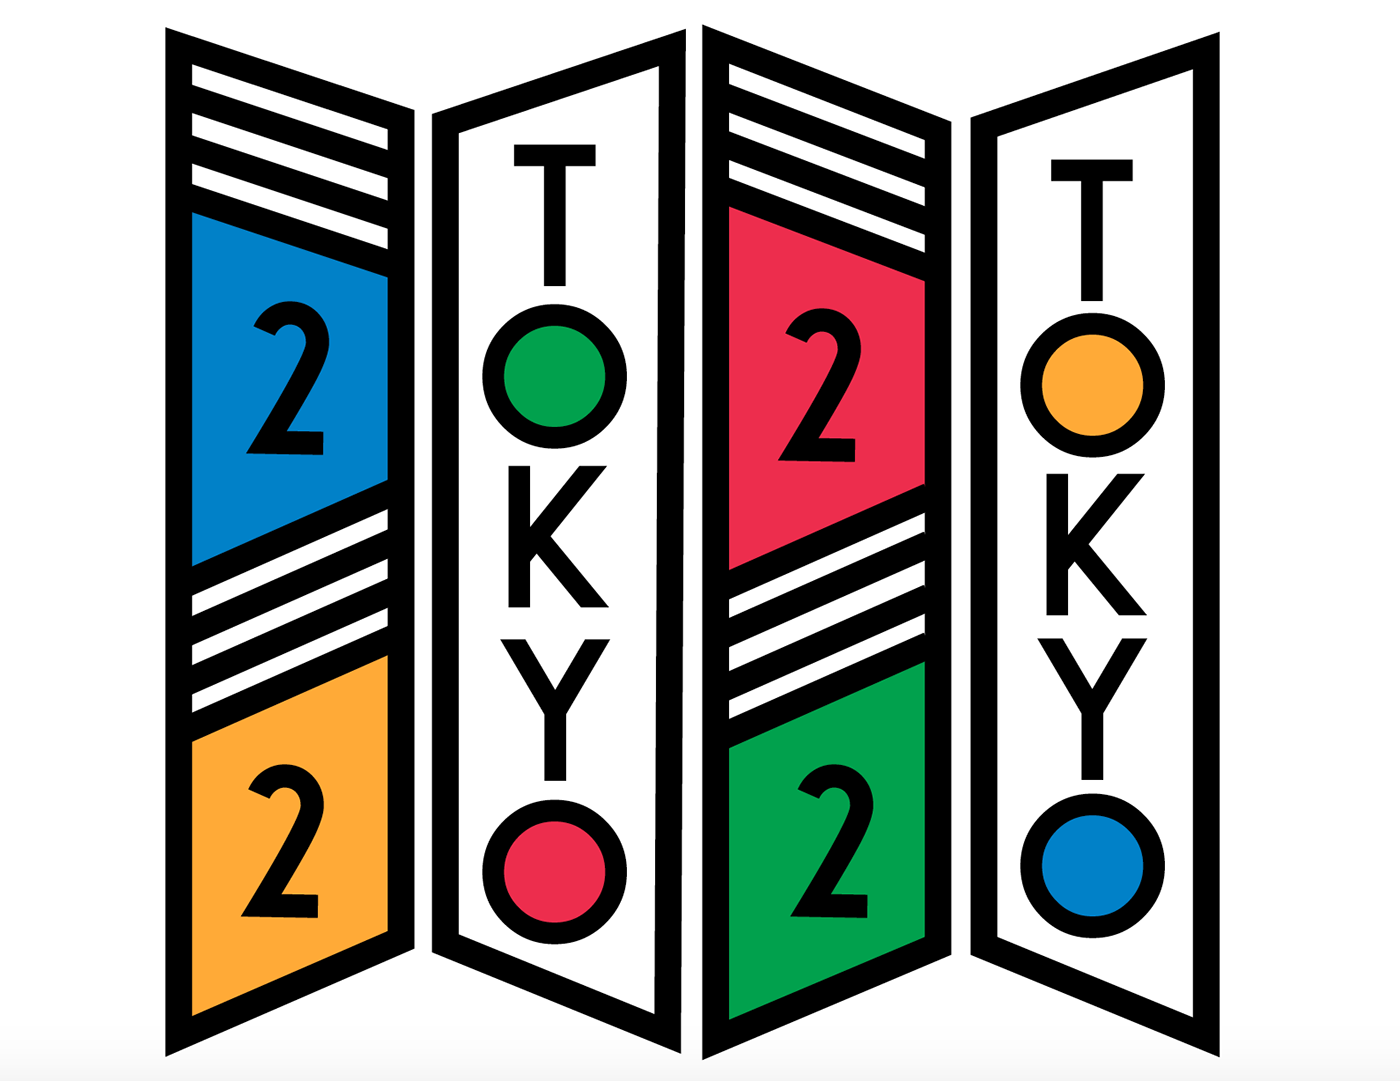 Tokyo 2020 Olympic Posters on Behance